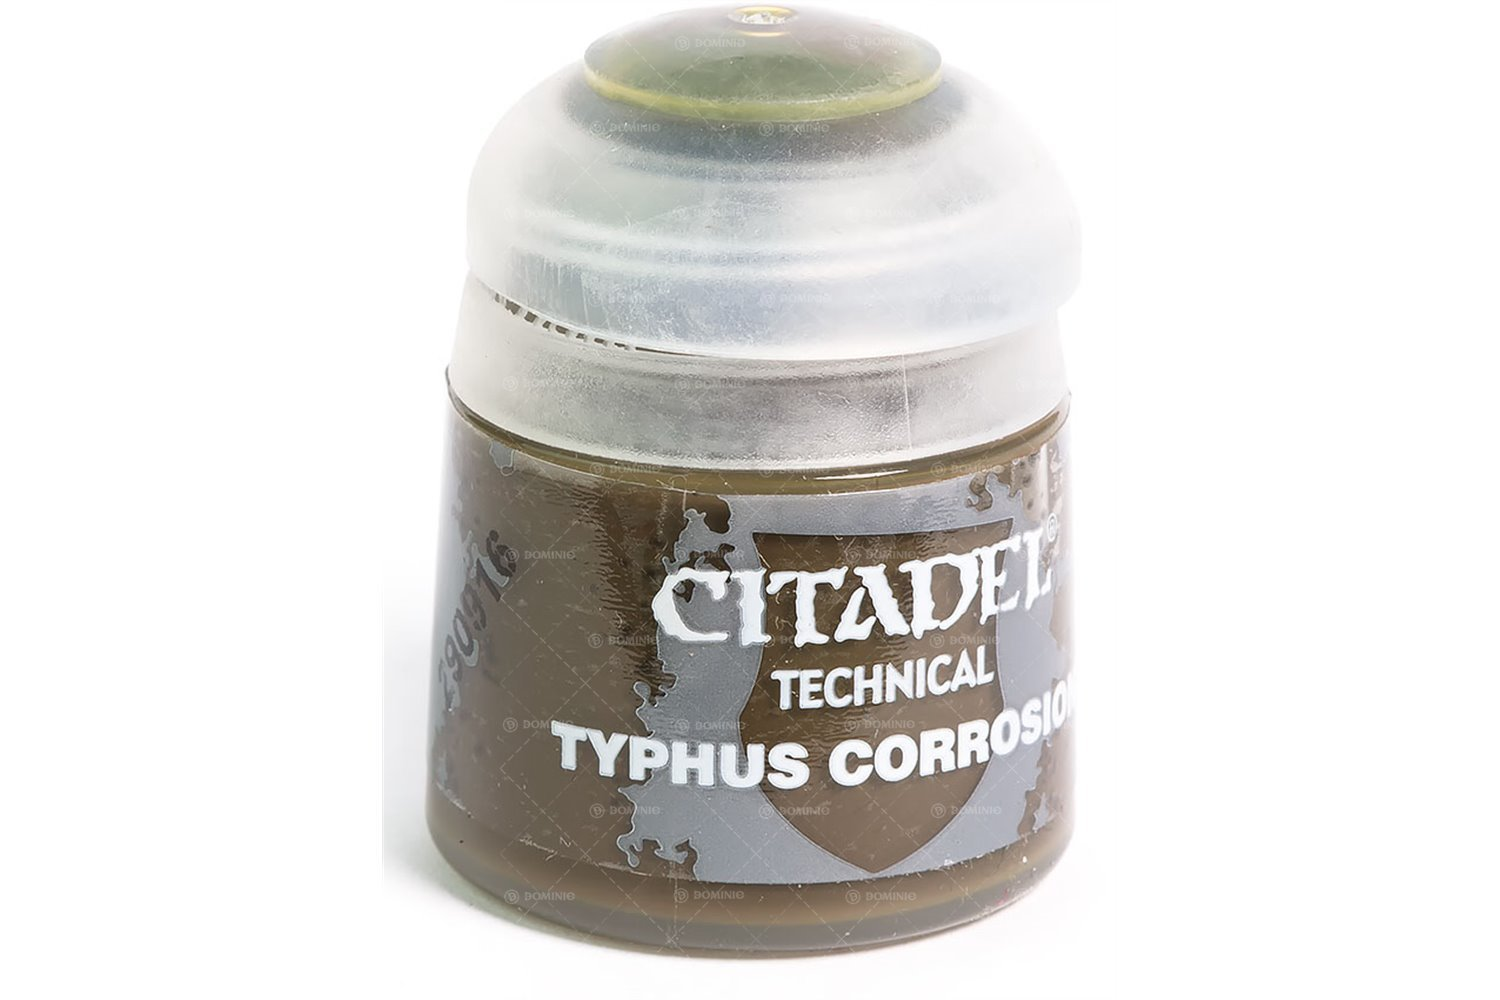 Citadel Technical: Typhus Corrosion by Games Workshop